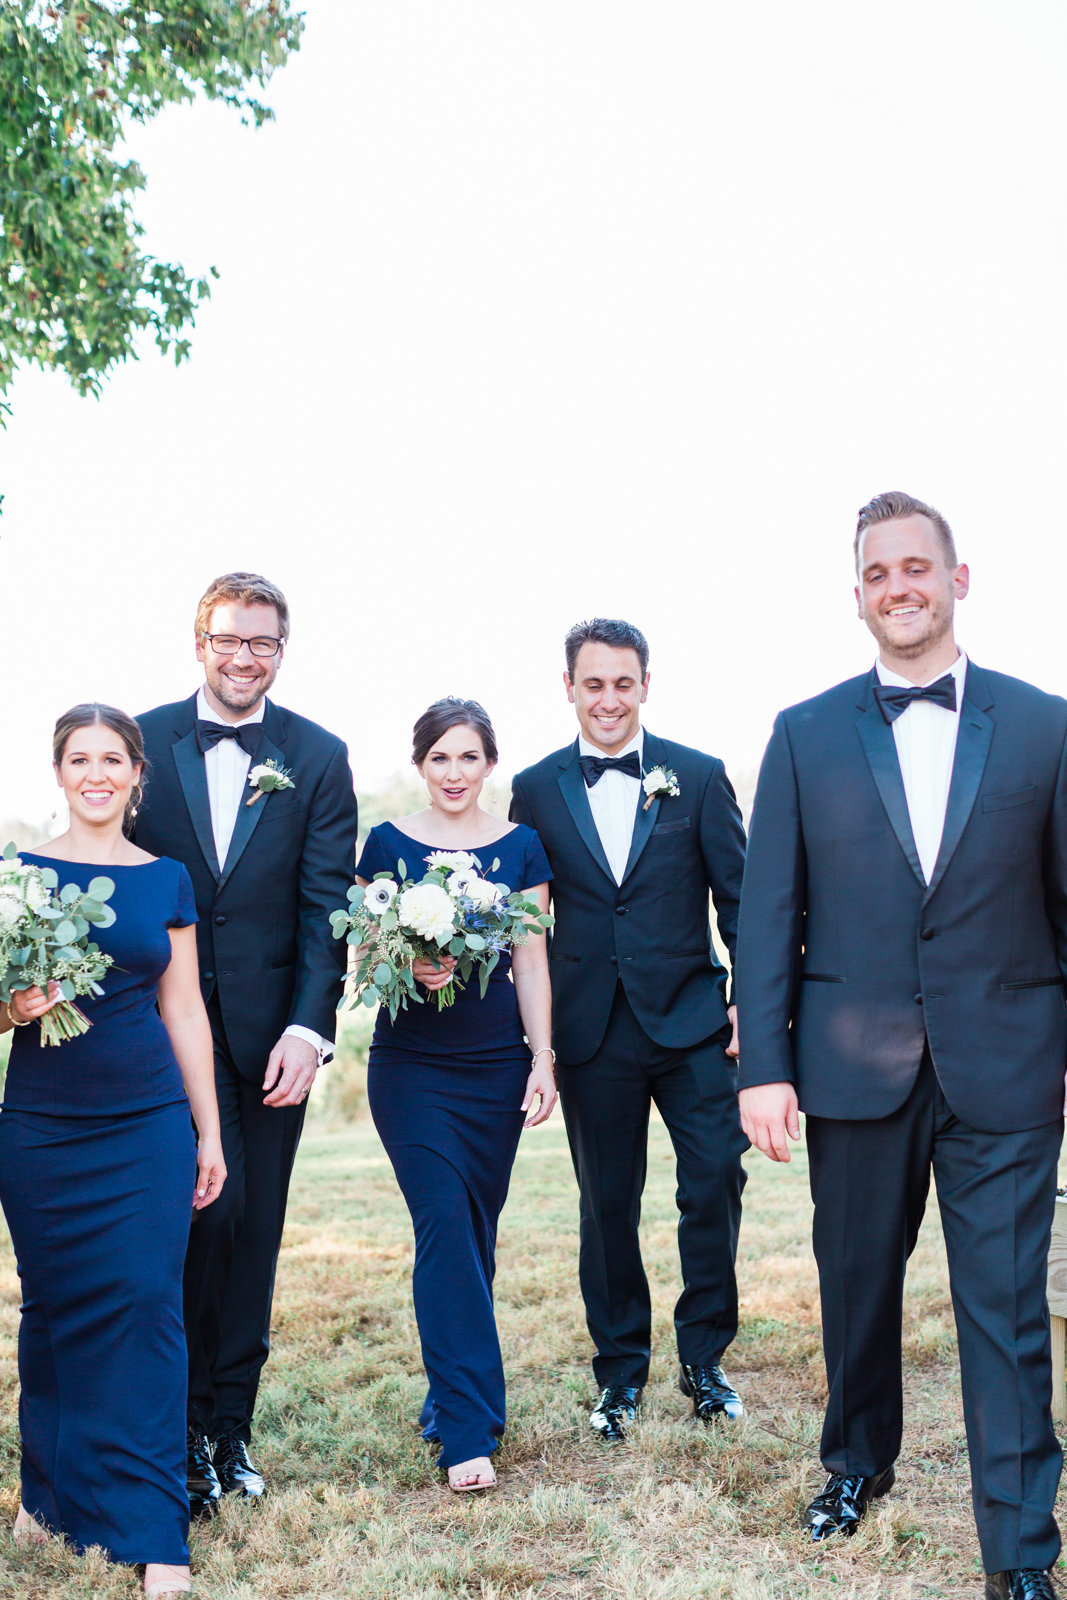 Candid Bridal Party poses